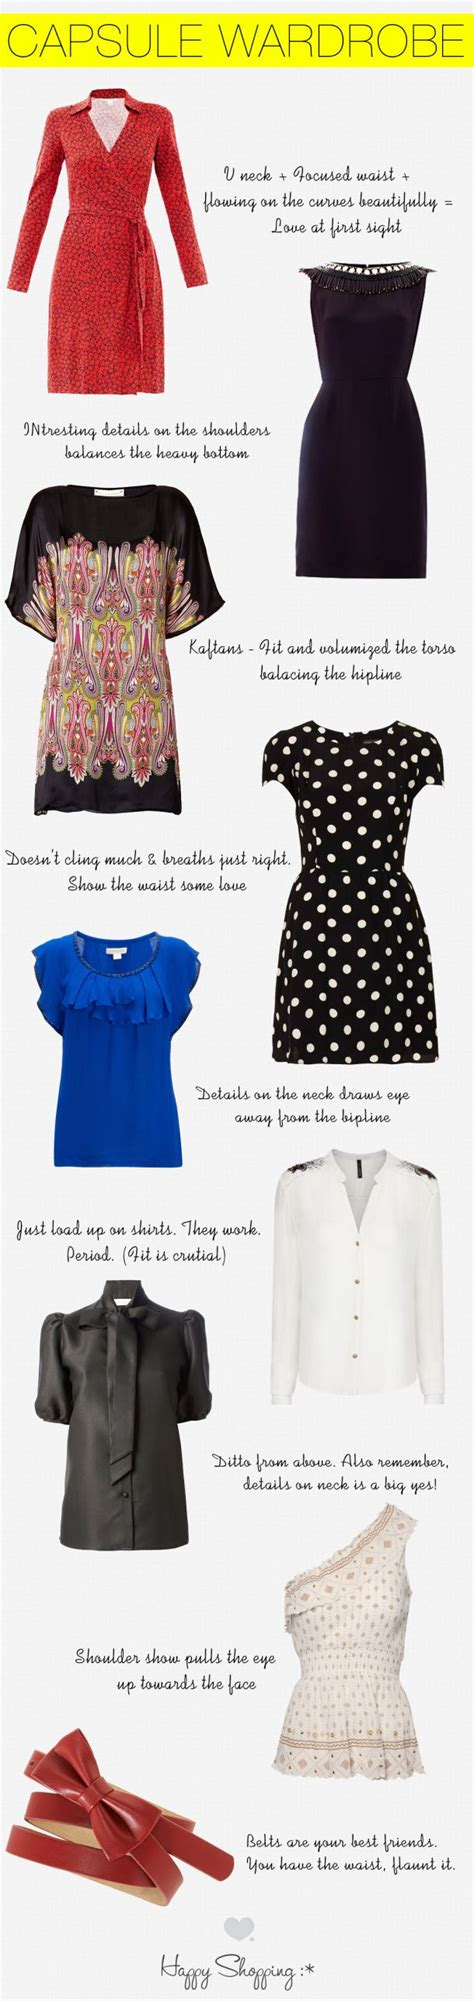 building a capsule wardrobe for a pear shaped woman fashion and beauty tips capsule wardrobe and shopping